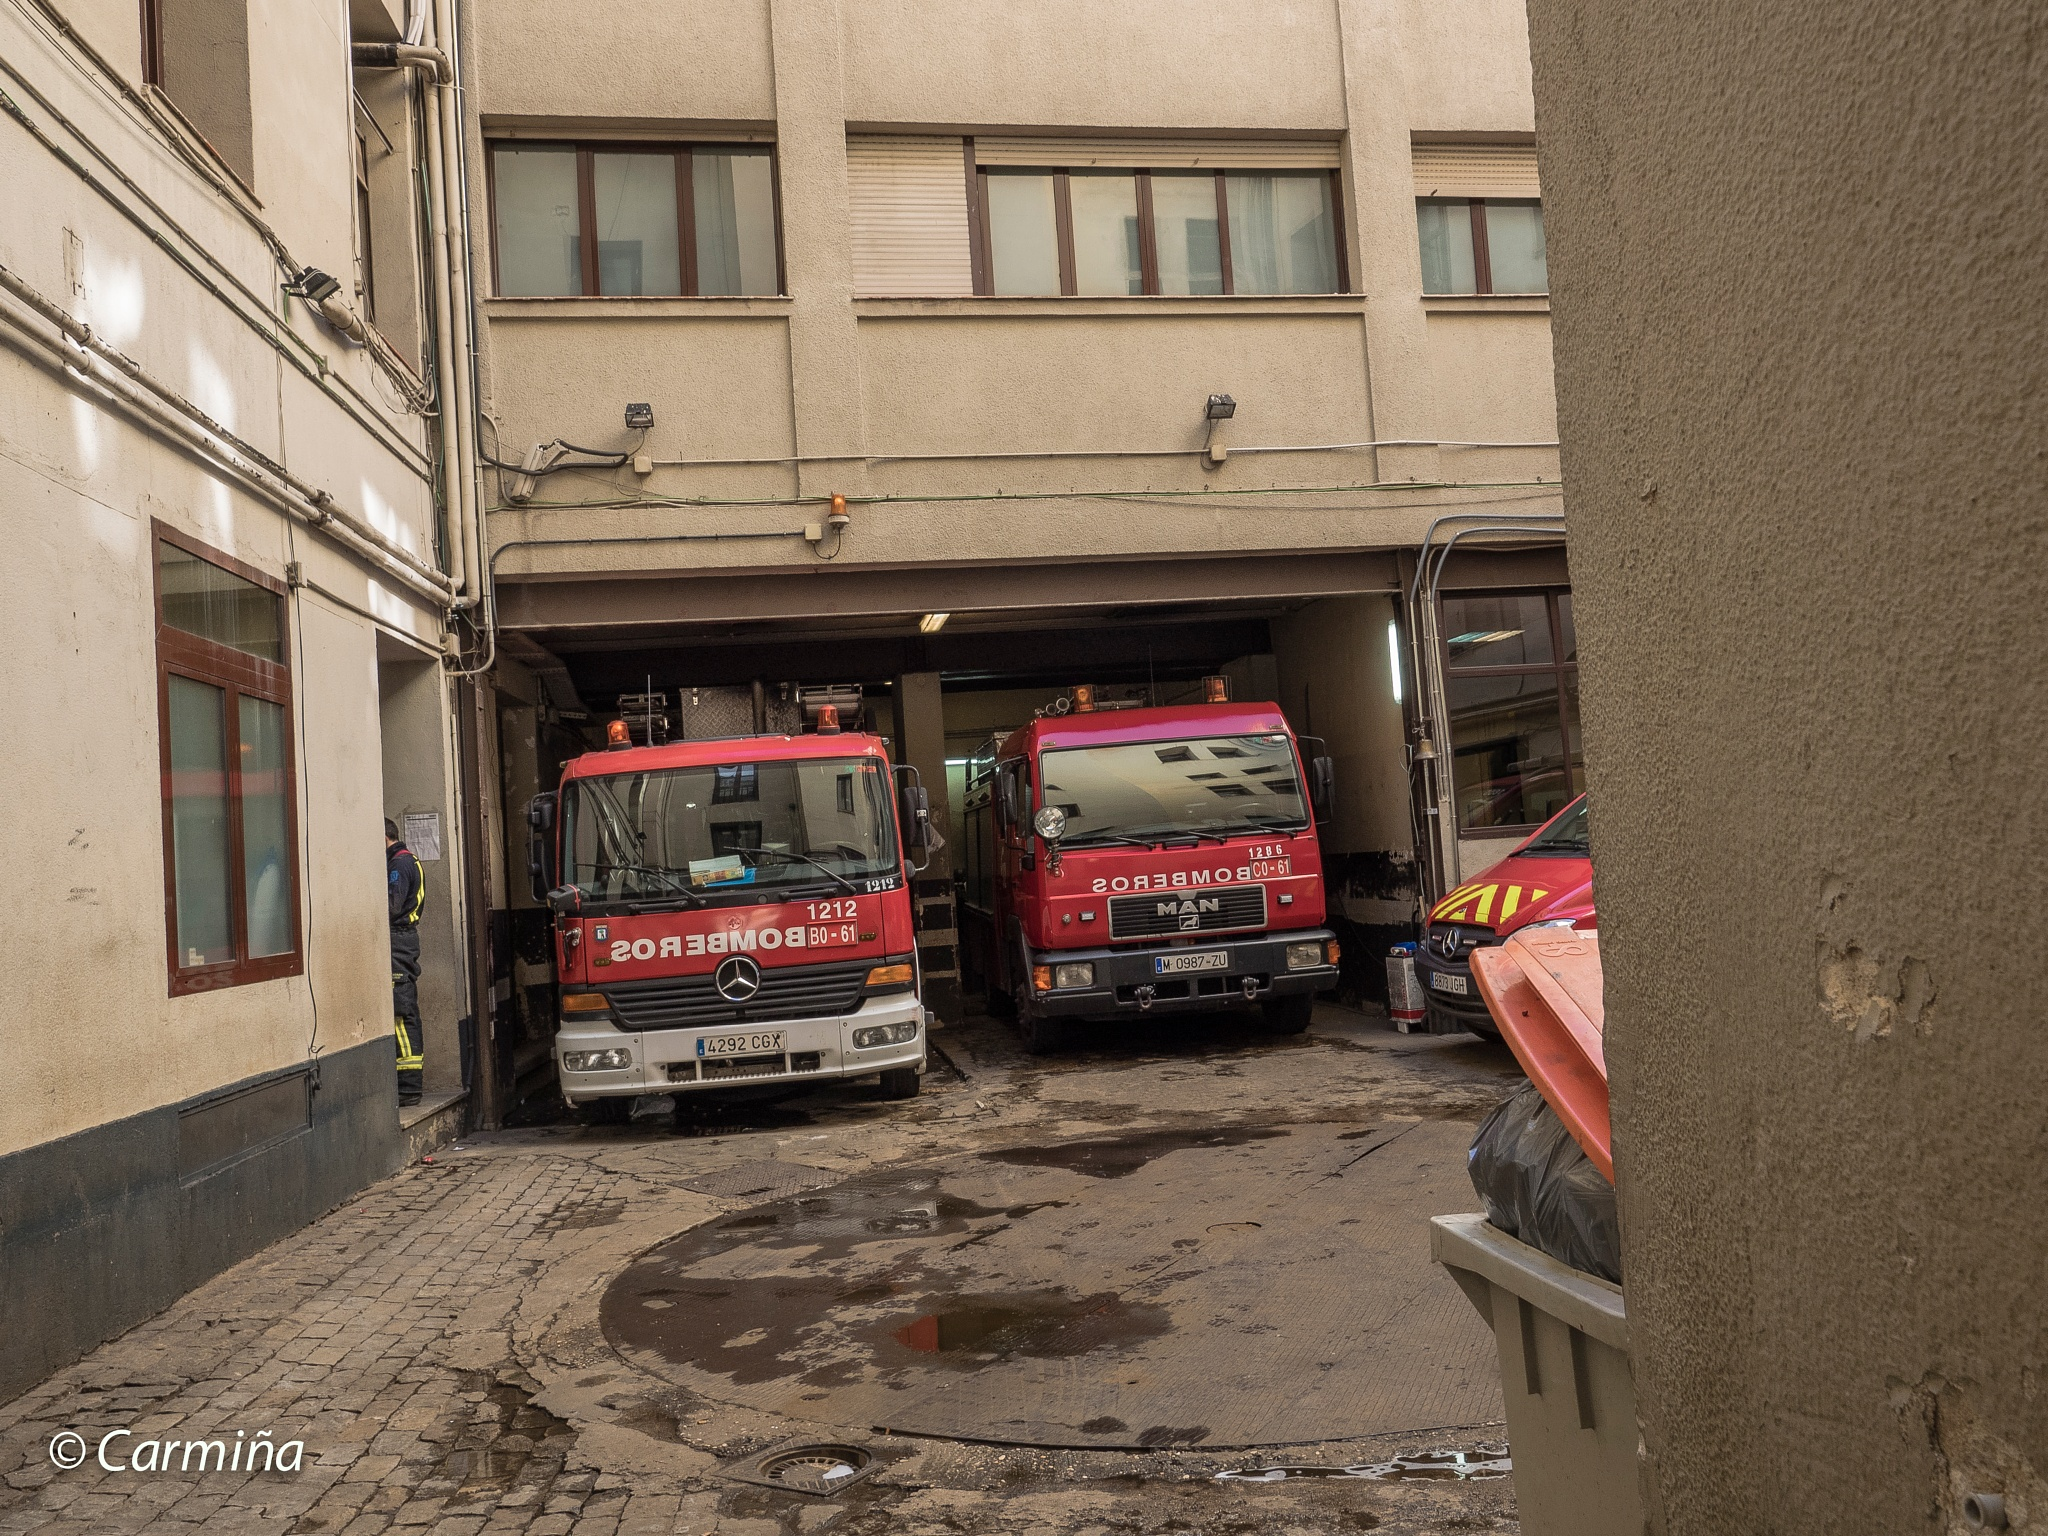 Bomberos. Cuartel General. by carmina.waterstone